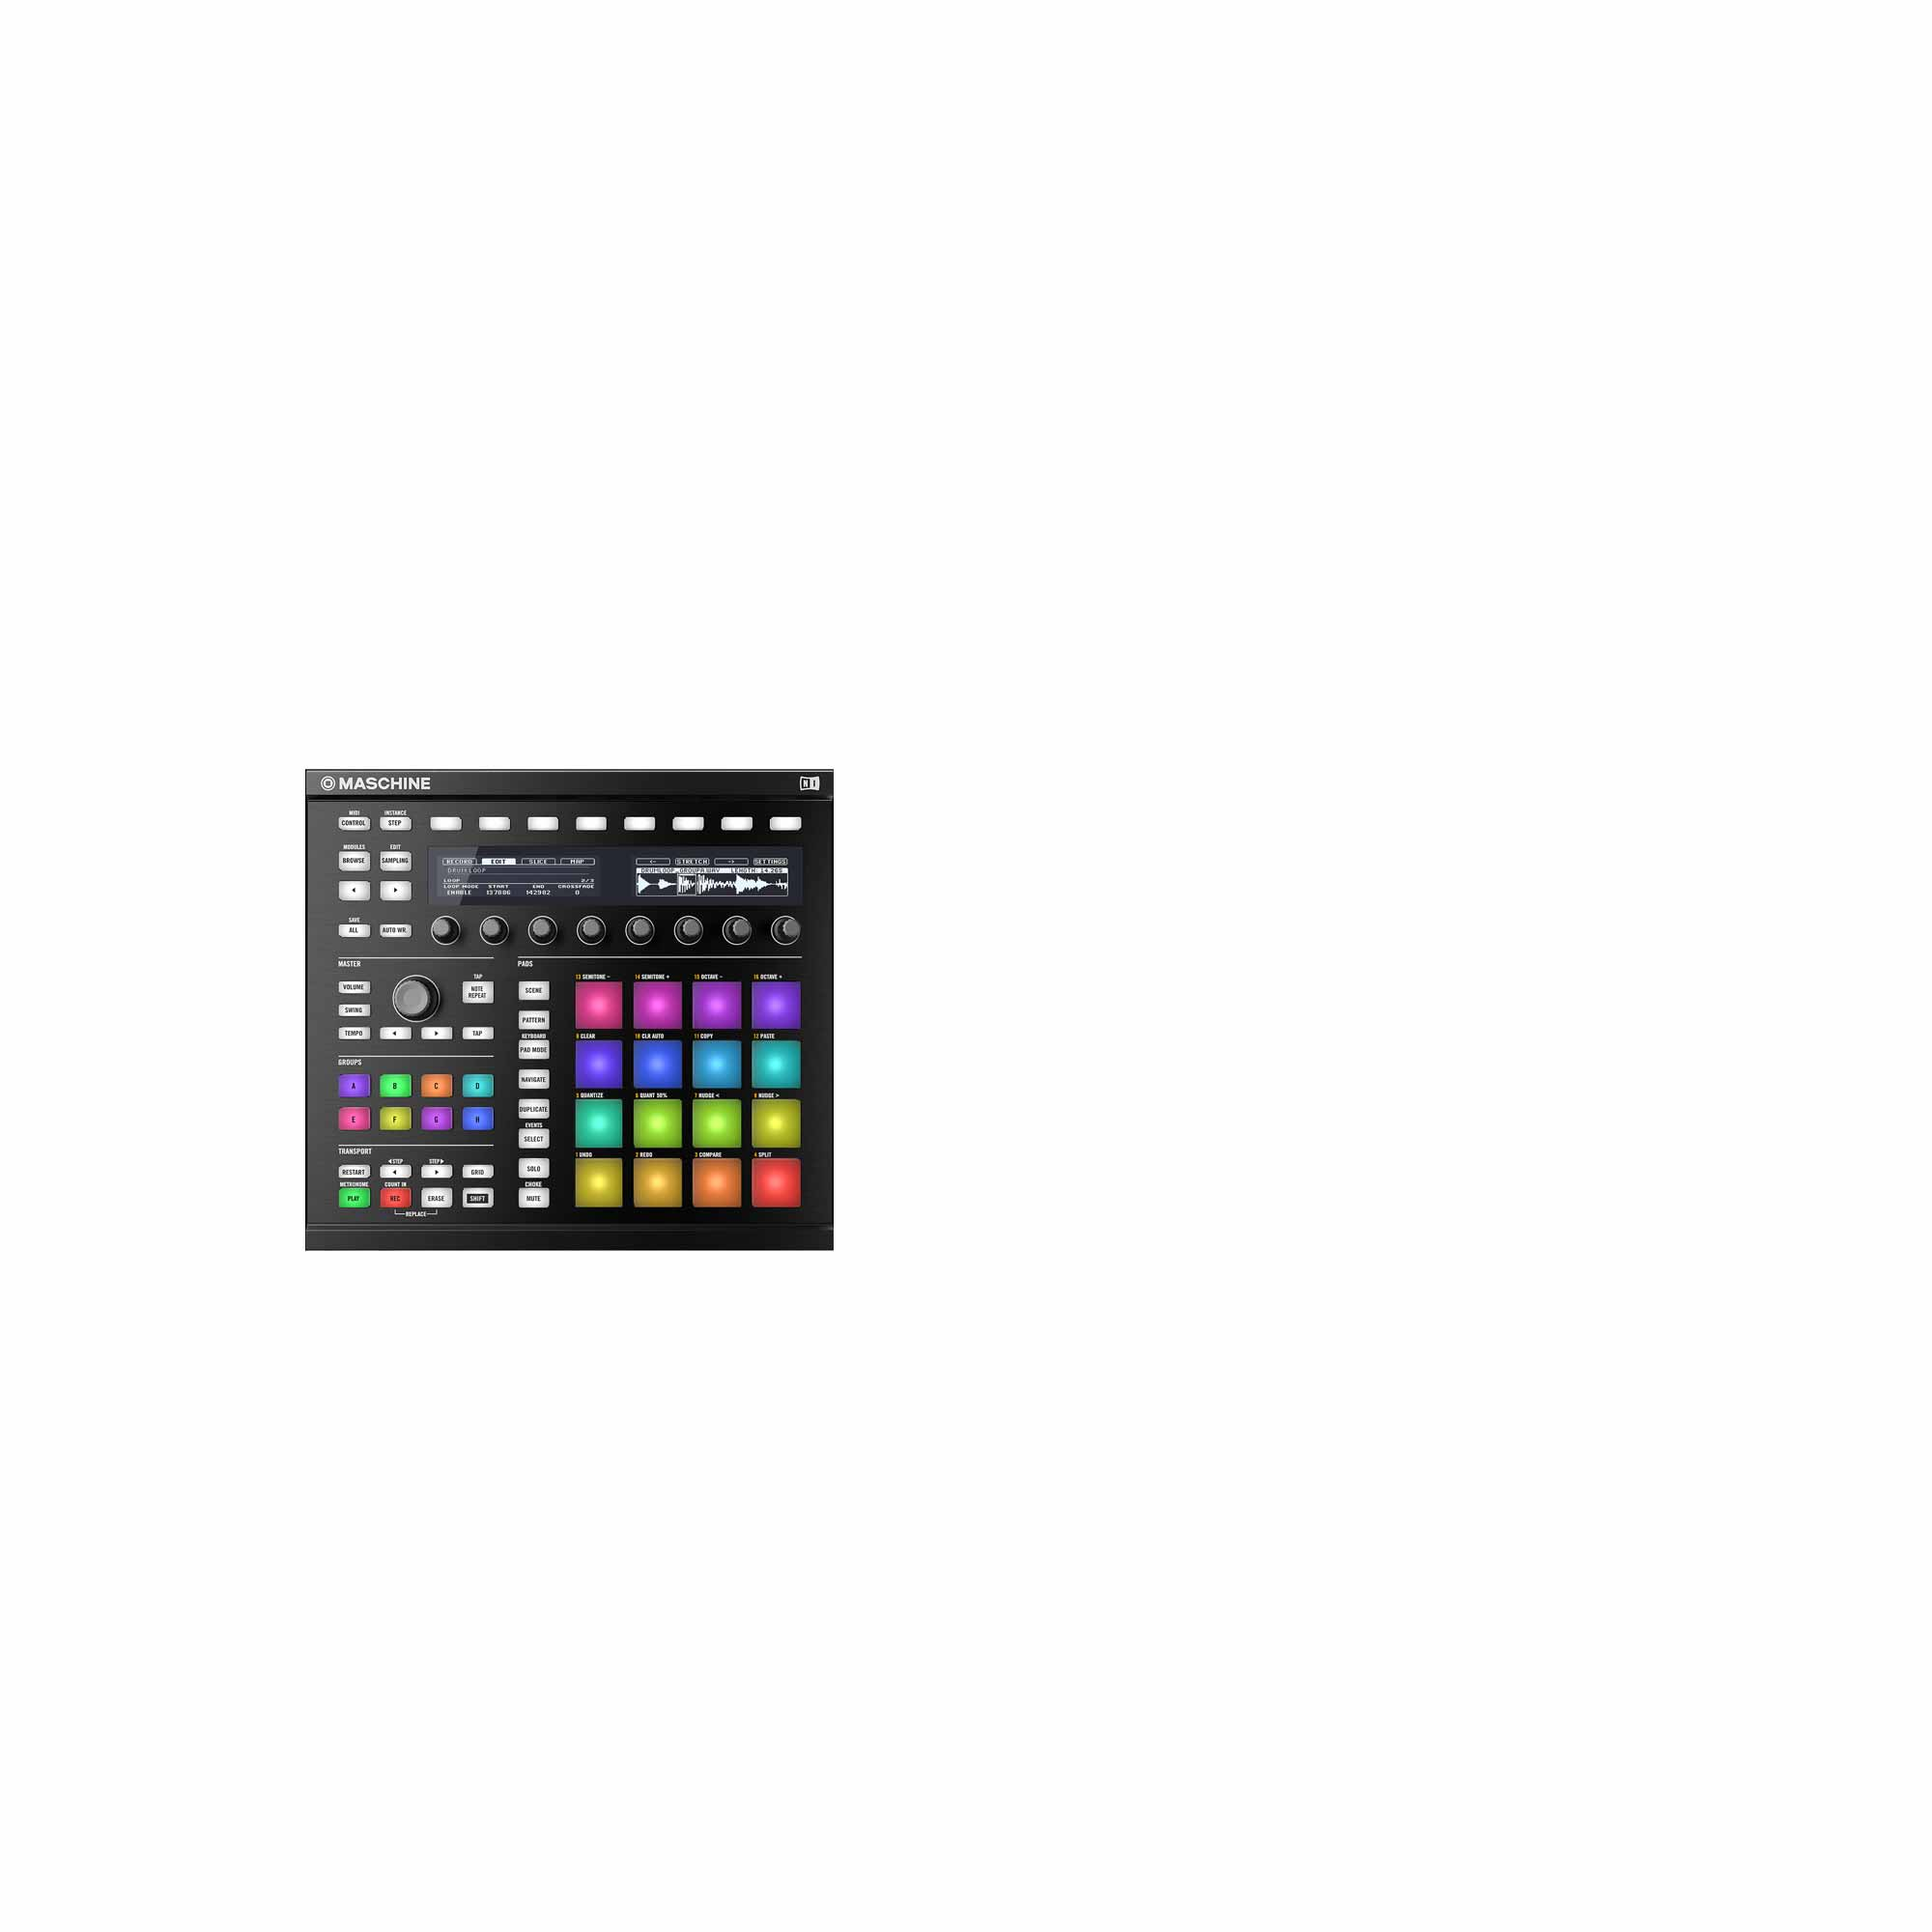 Native Instruments Announces New Generation Of Maschine Hardware & Software